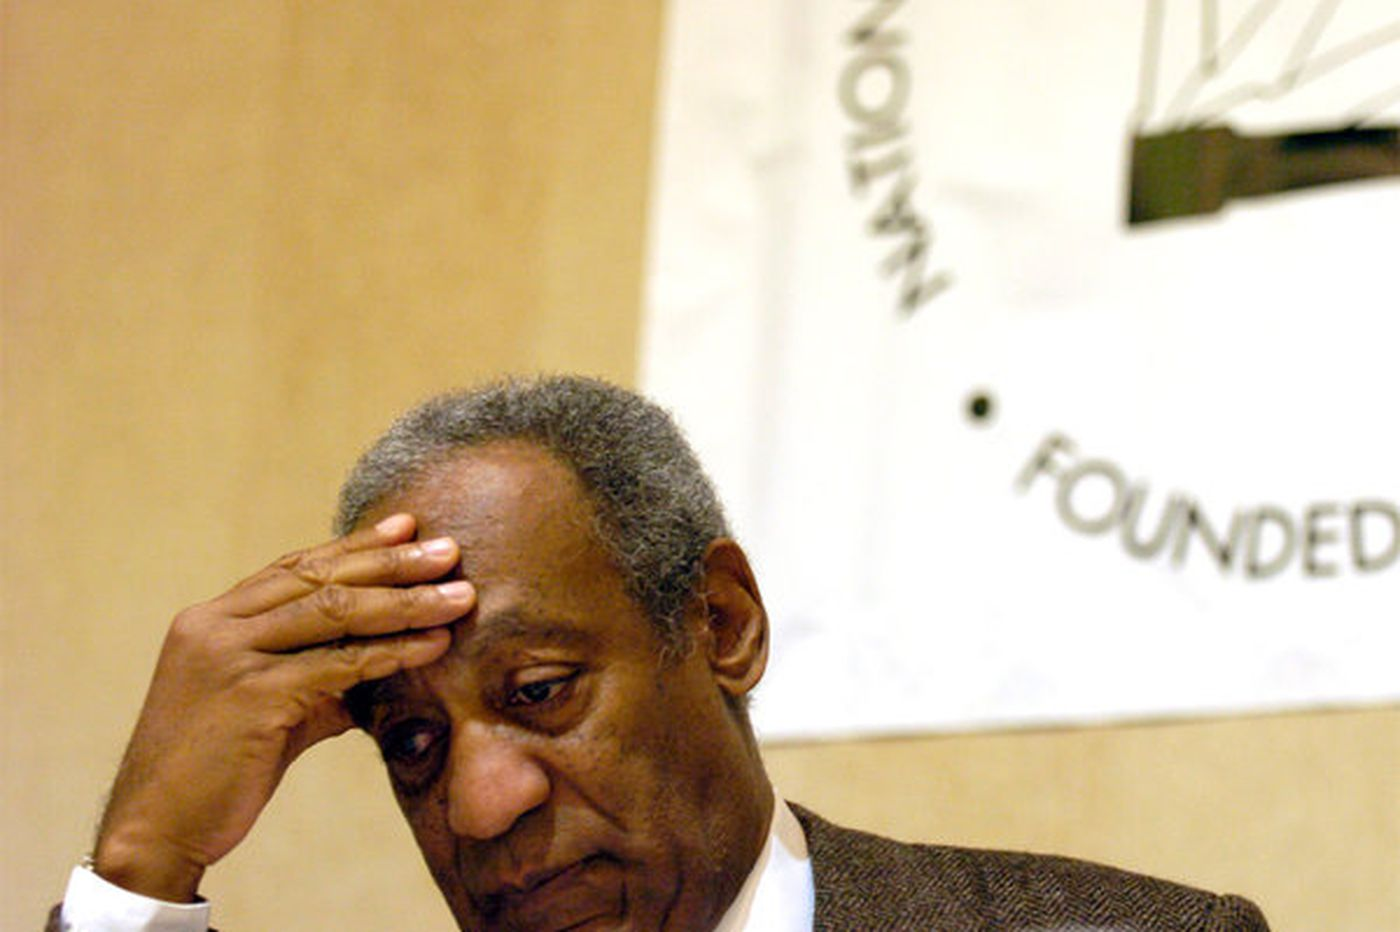 My Cosby mea culpa: I was wrong.